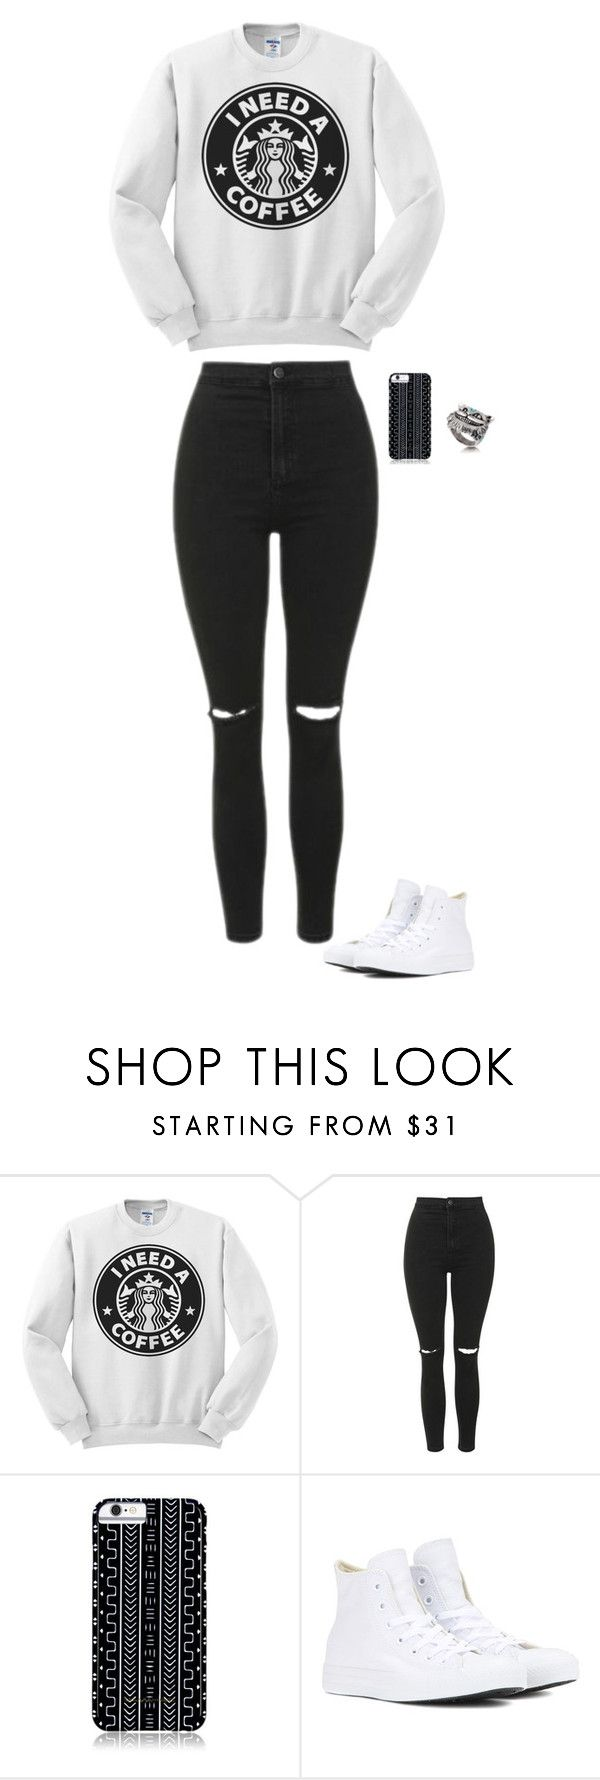 Untitled #182 by sing-into-life on Polyvore featuring Topshop, Converse and Savannah Hayes